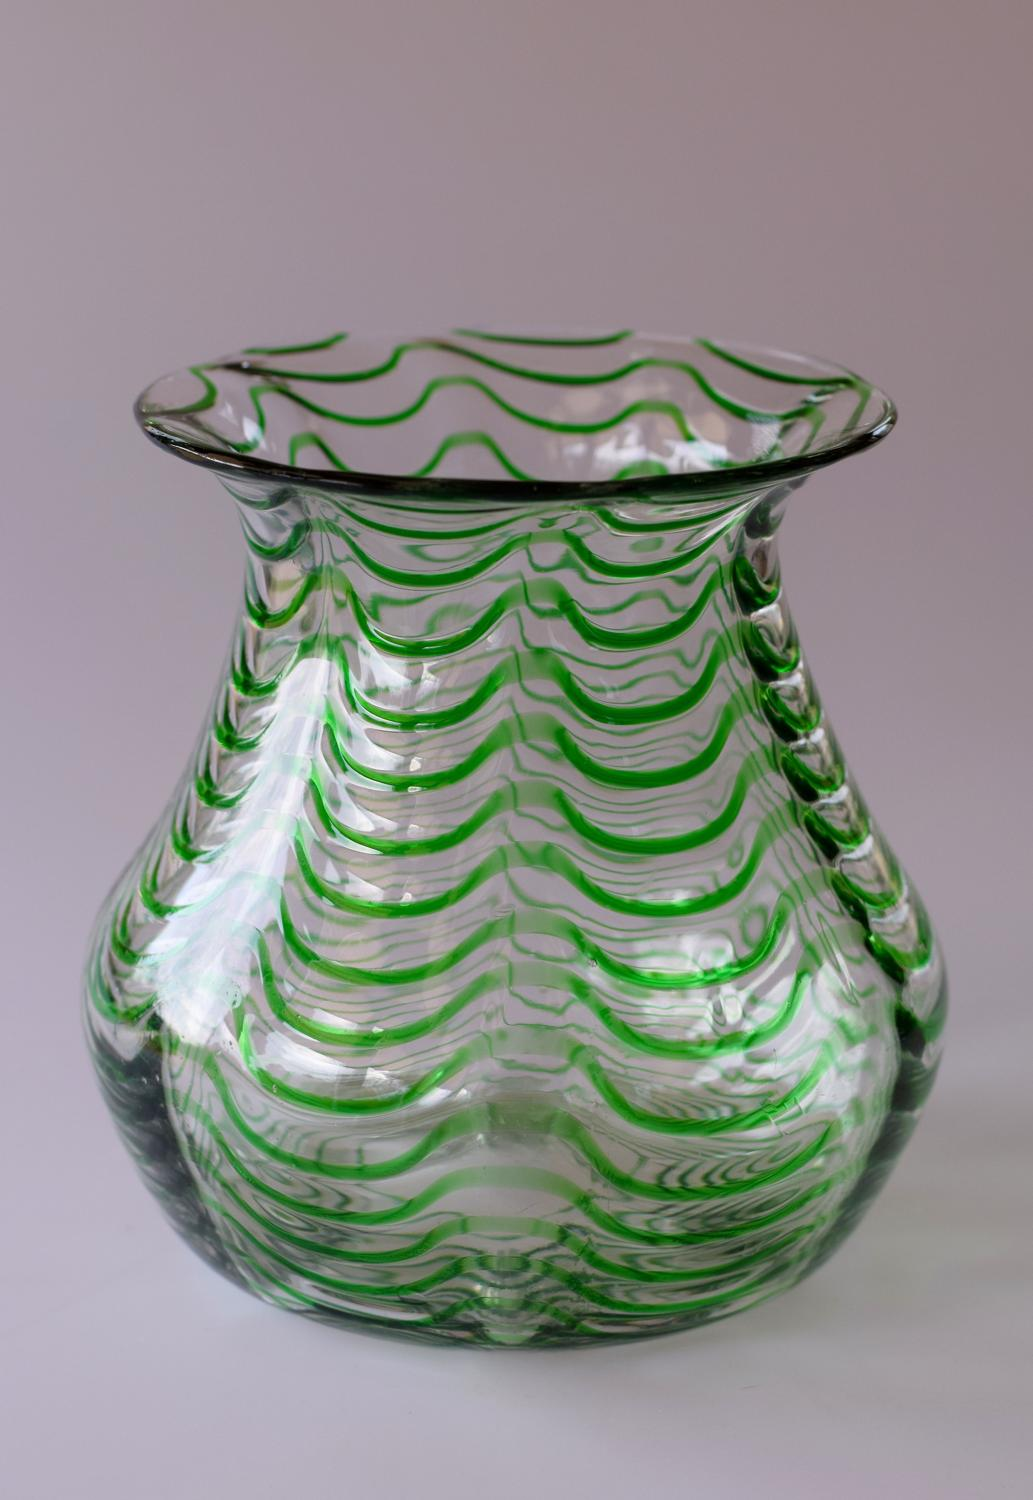 Green and white wavy threaded vase